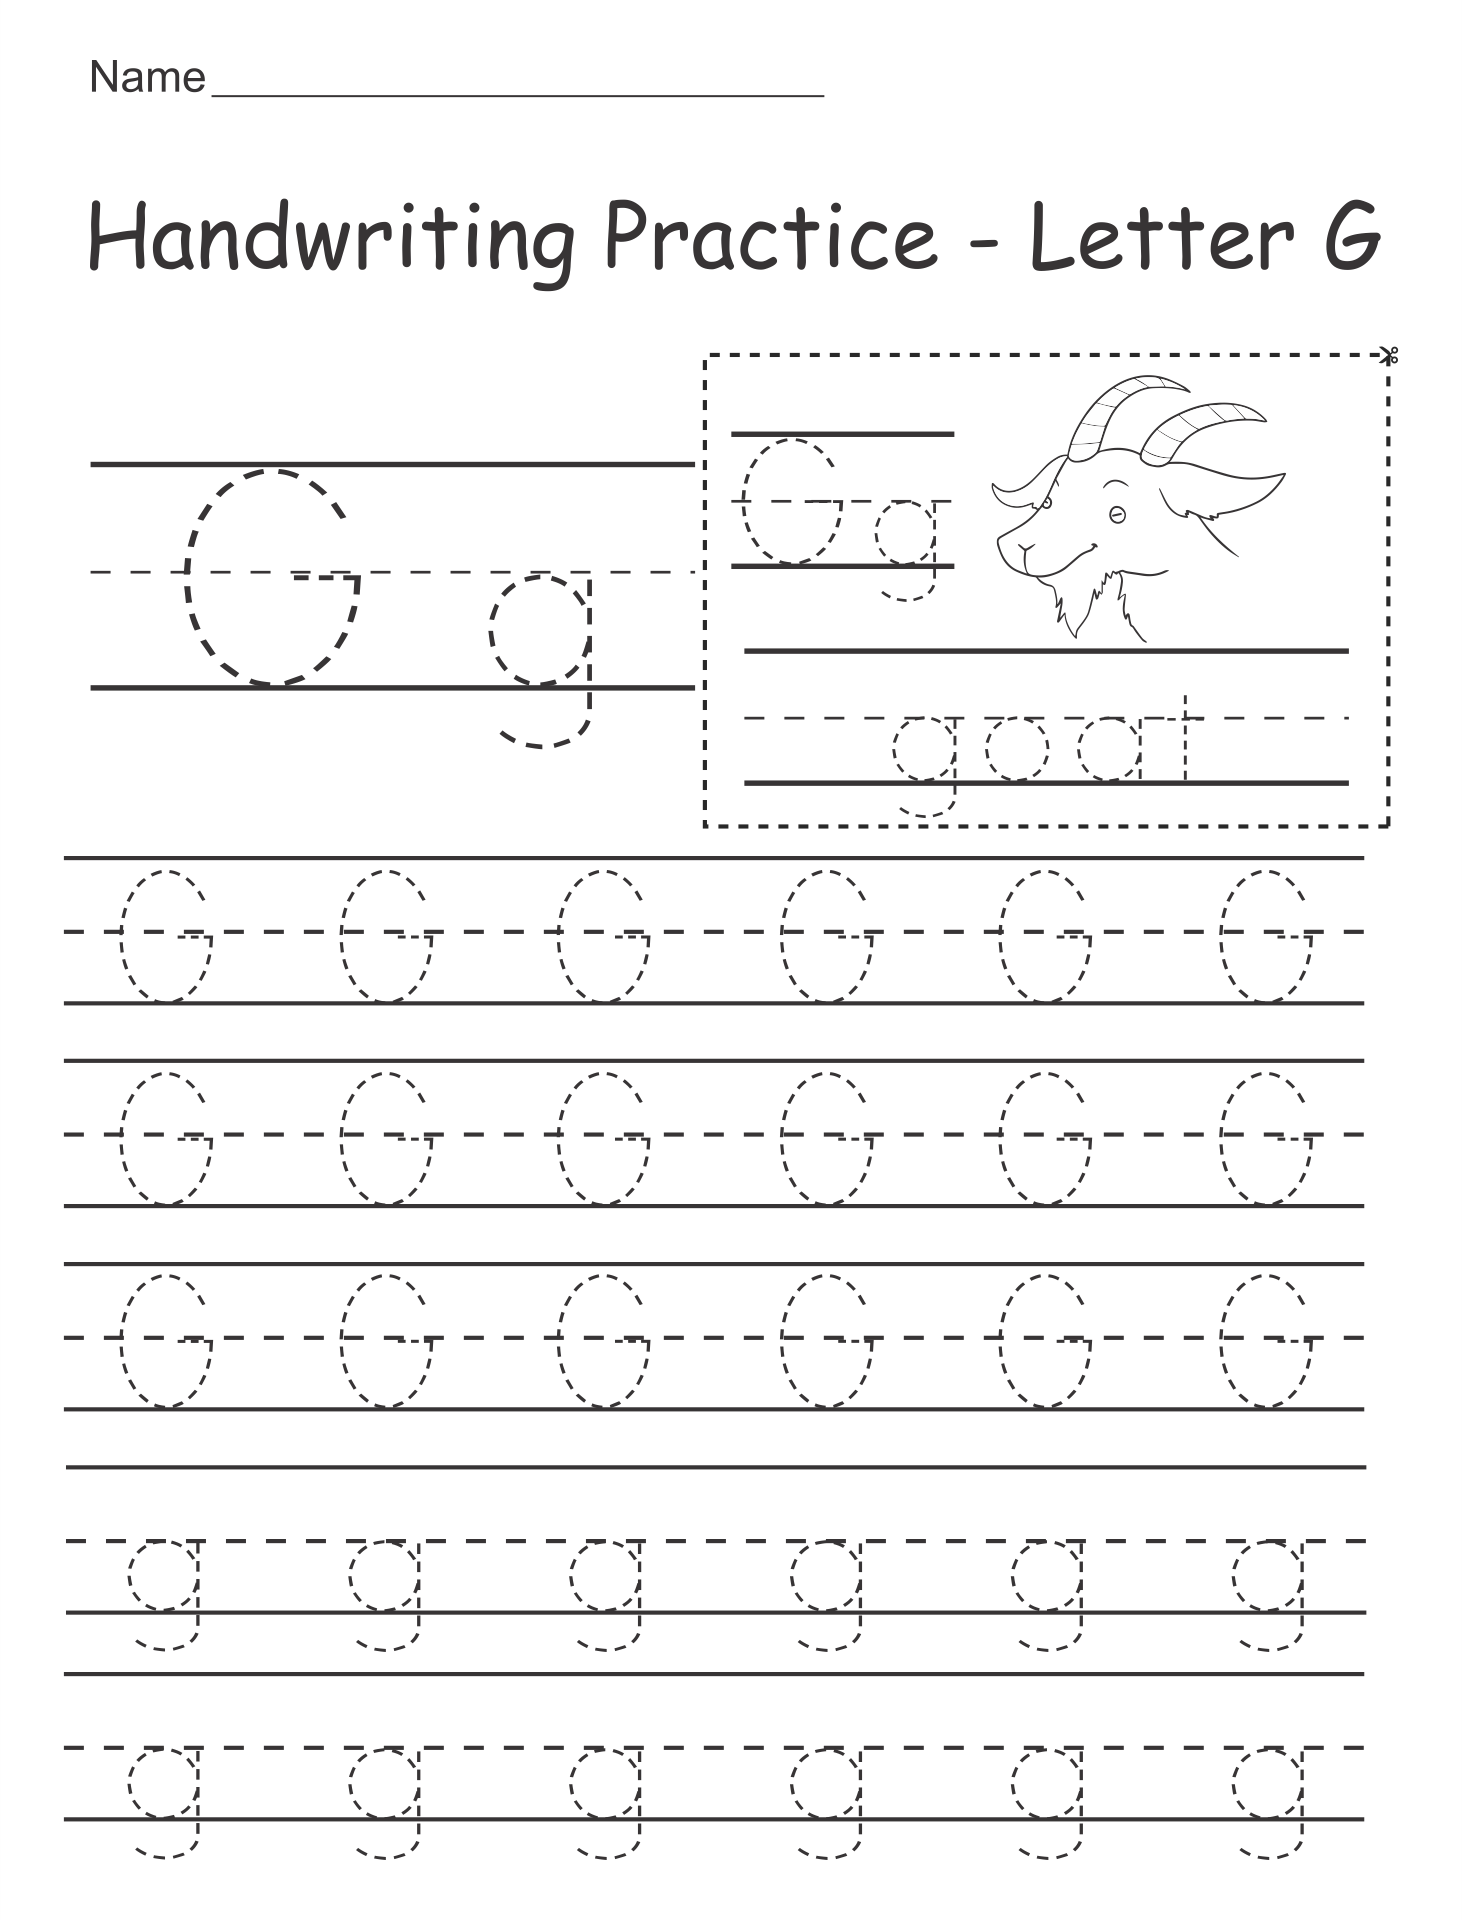 9 Best Images of Free Printable Alphabet Worksheets Kindergarten ...Free Printable Alphabet Letter Worksheets